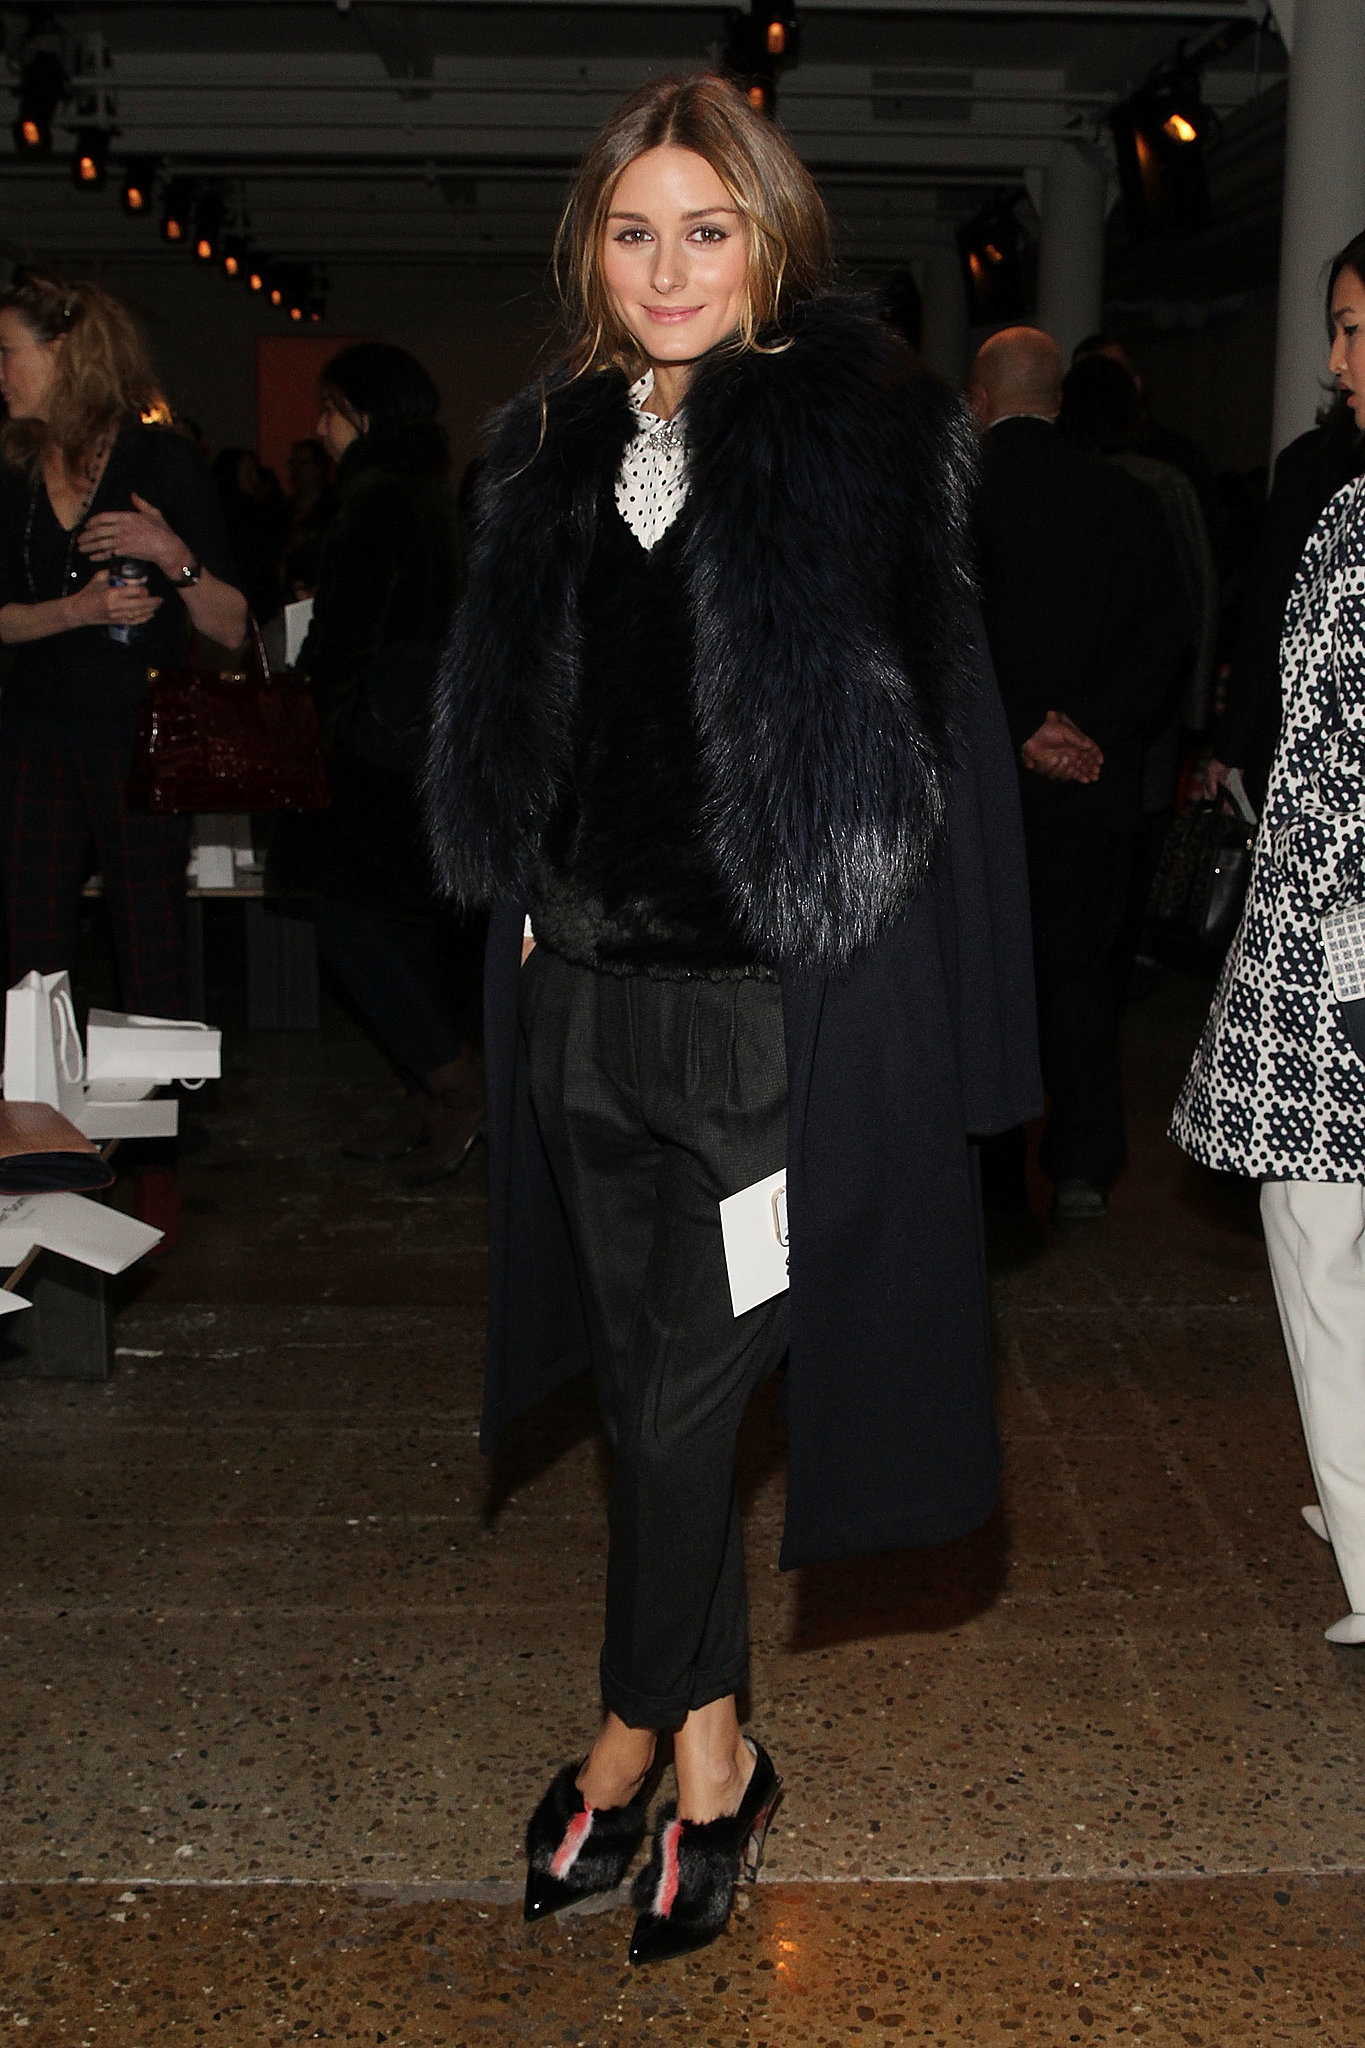 For Peter Som's front row, Olivia styled out a Club Monaco shirt and Tibi trousers with a covet-worthy pair of Fendi heels and a fur-collared Agnona coat.